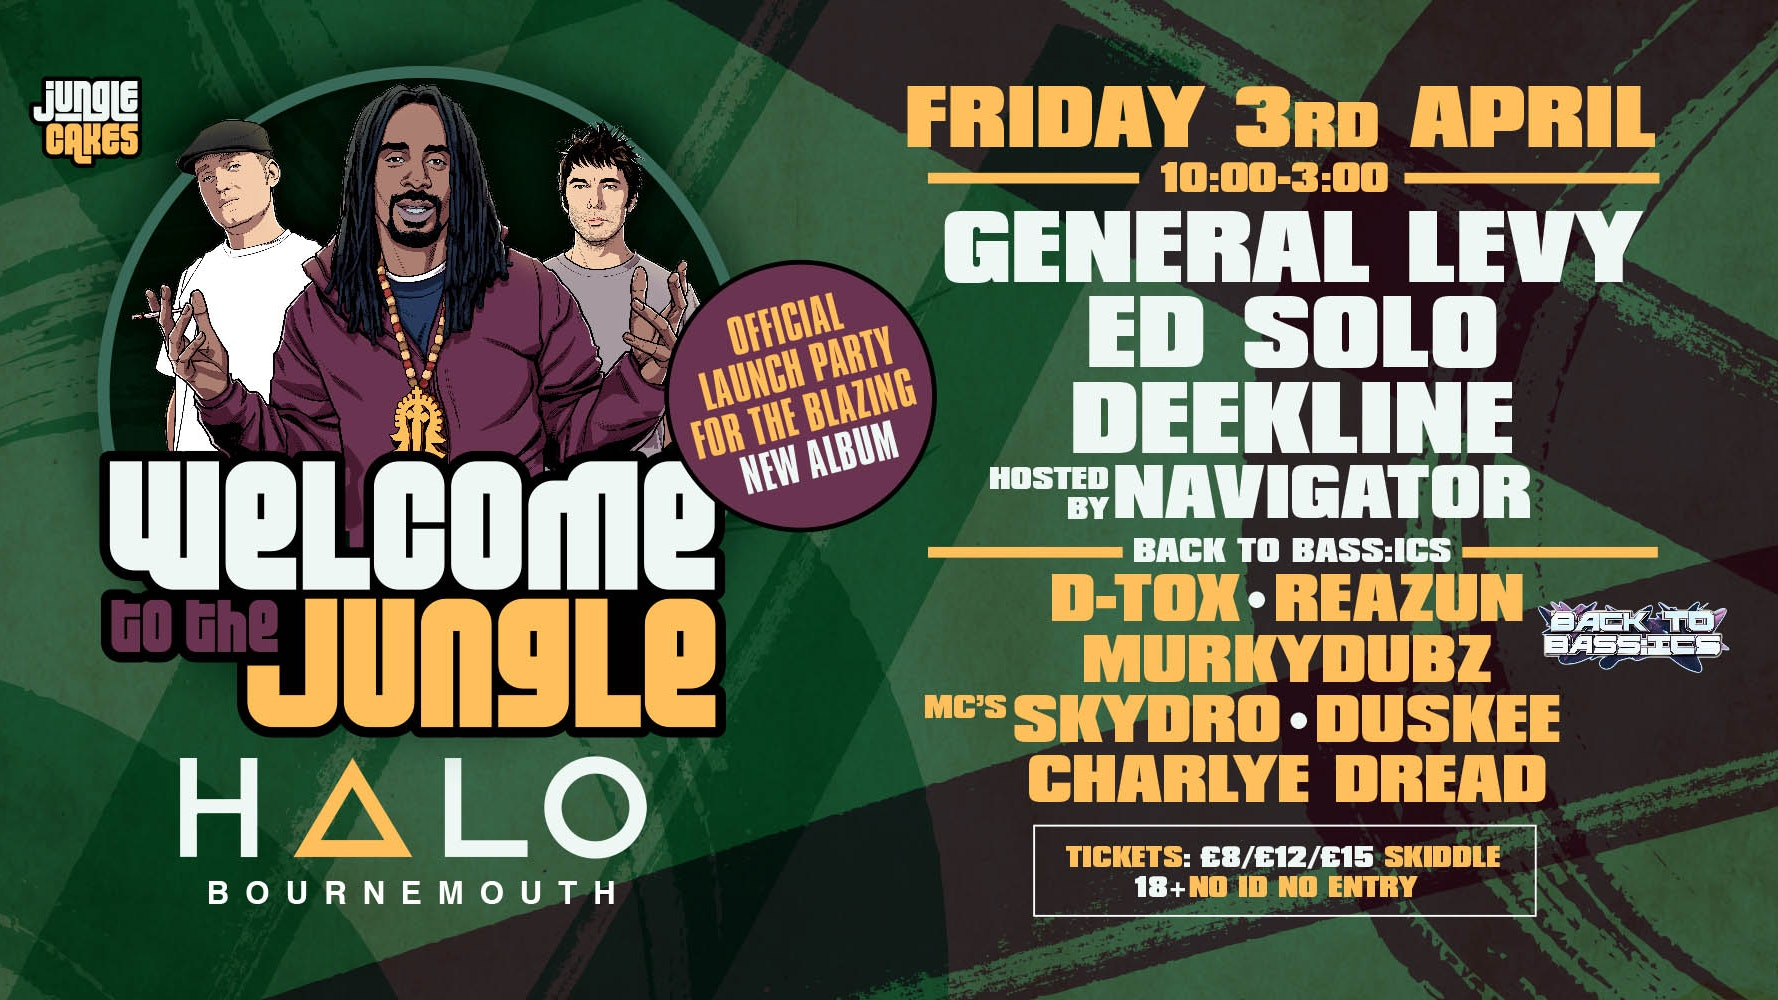 Welcome To The Jungle w/ General Levy, Ed Solo, Deekline